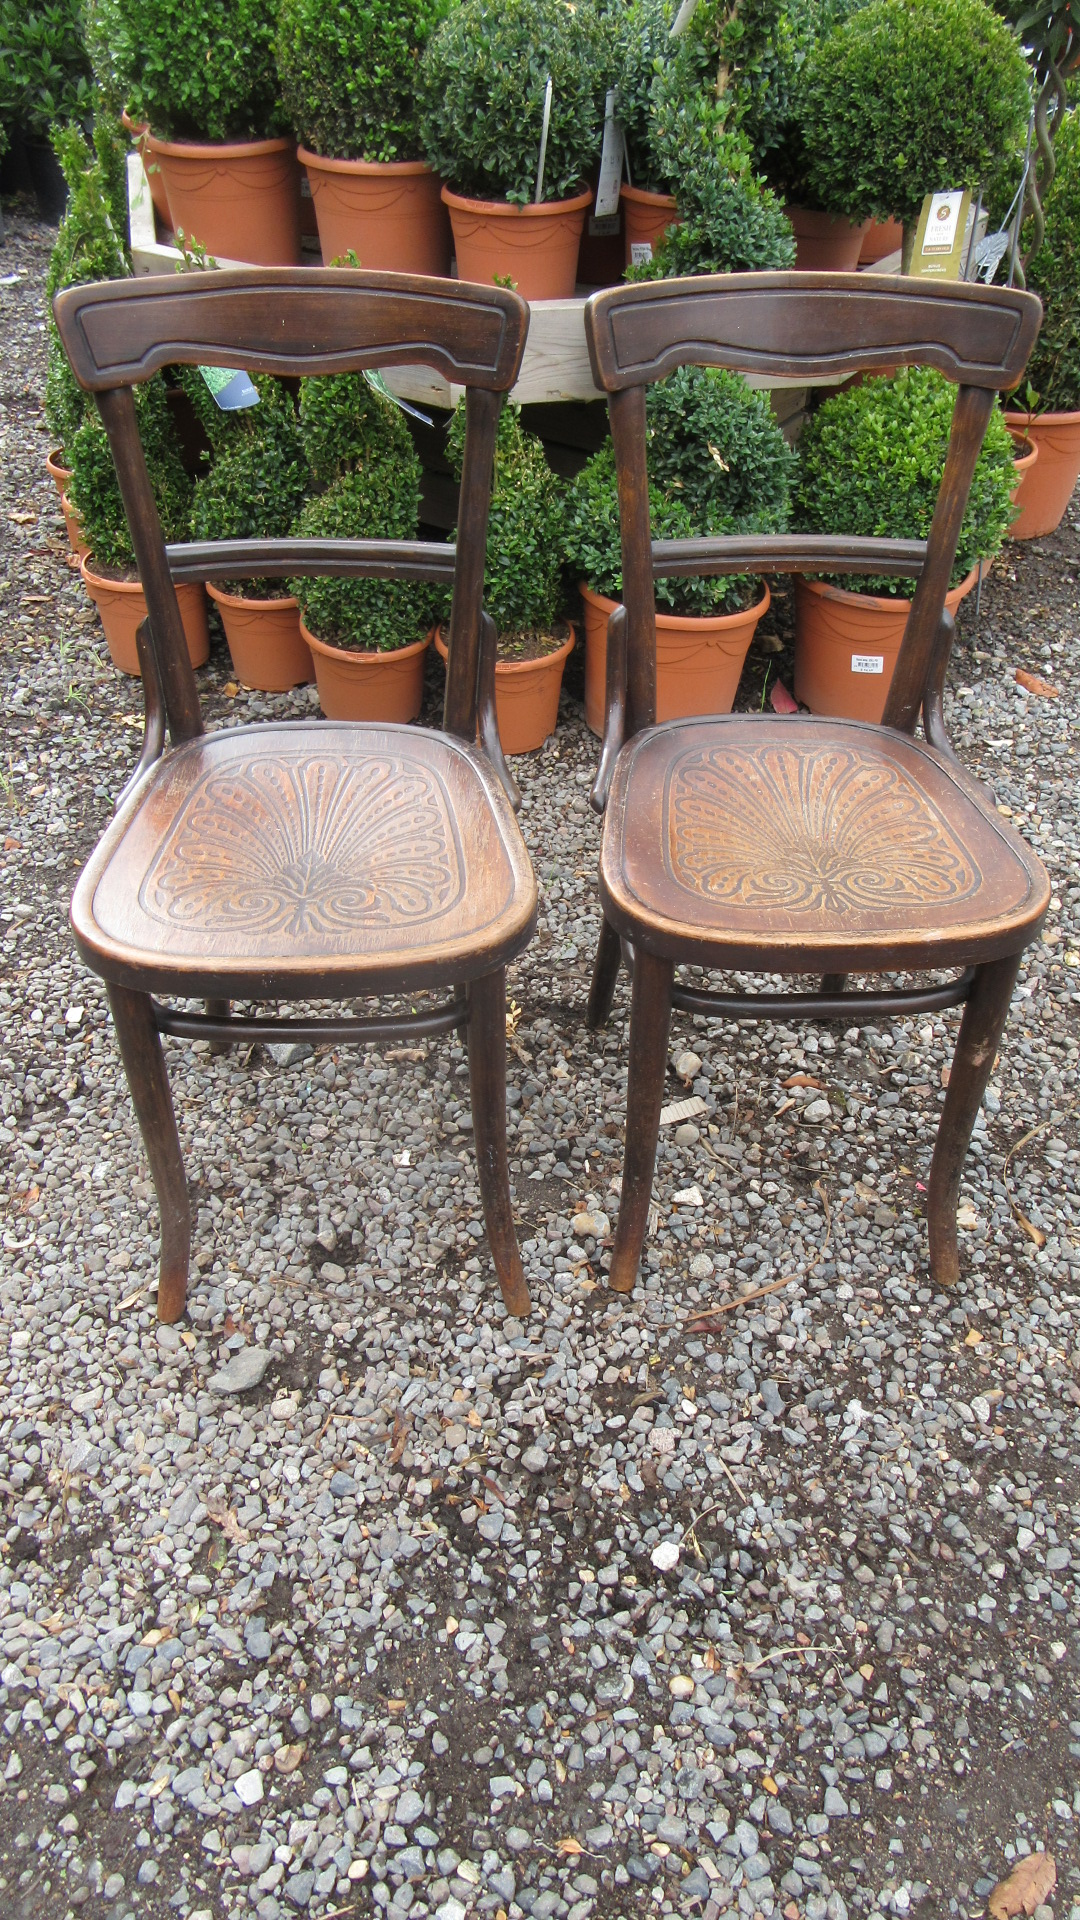 GOOD PAIR PAIR OF ANTIQUE THONET BENTWOOD CHAIRS